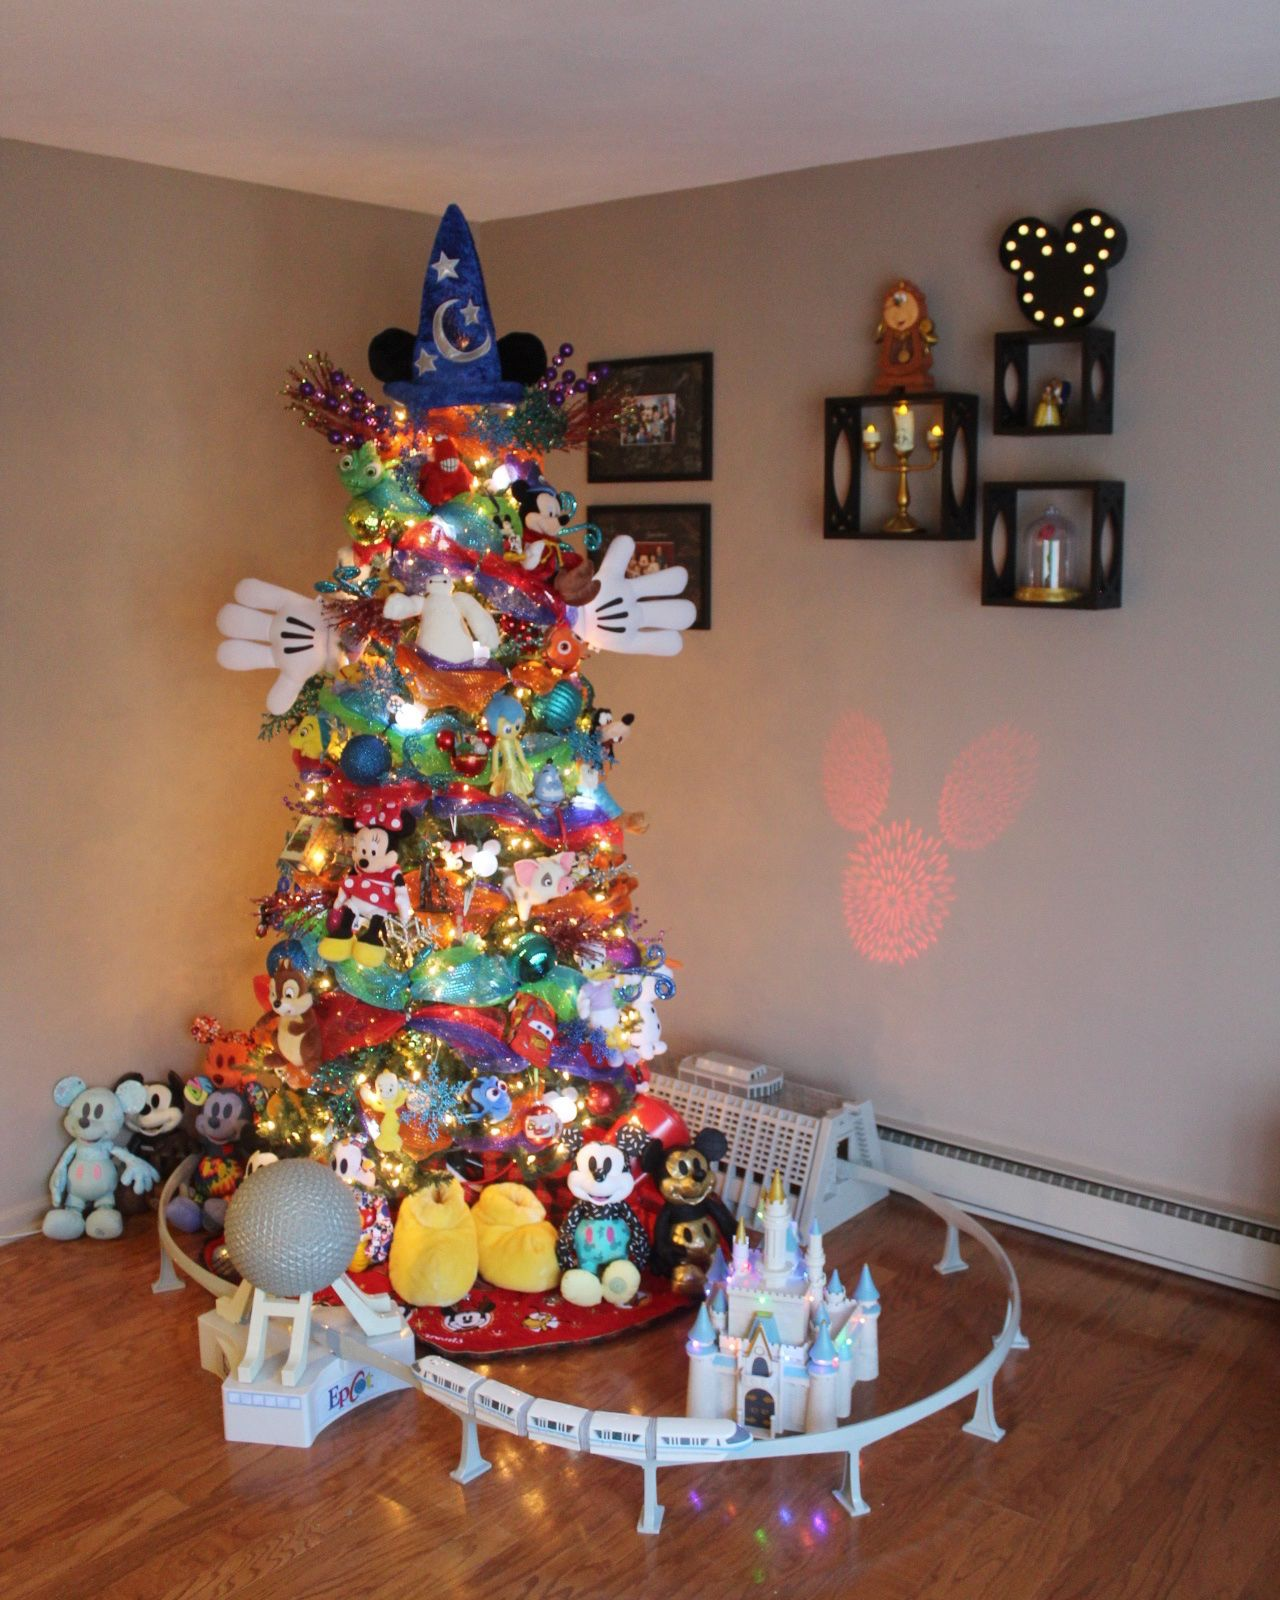 Our Annual Disney Themed Tree Complete With Monorail And